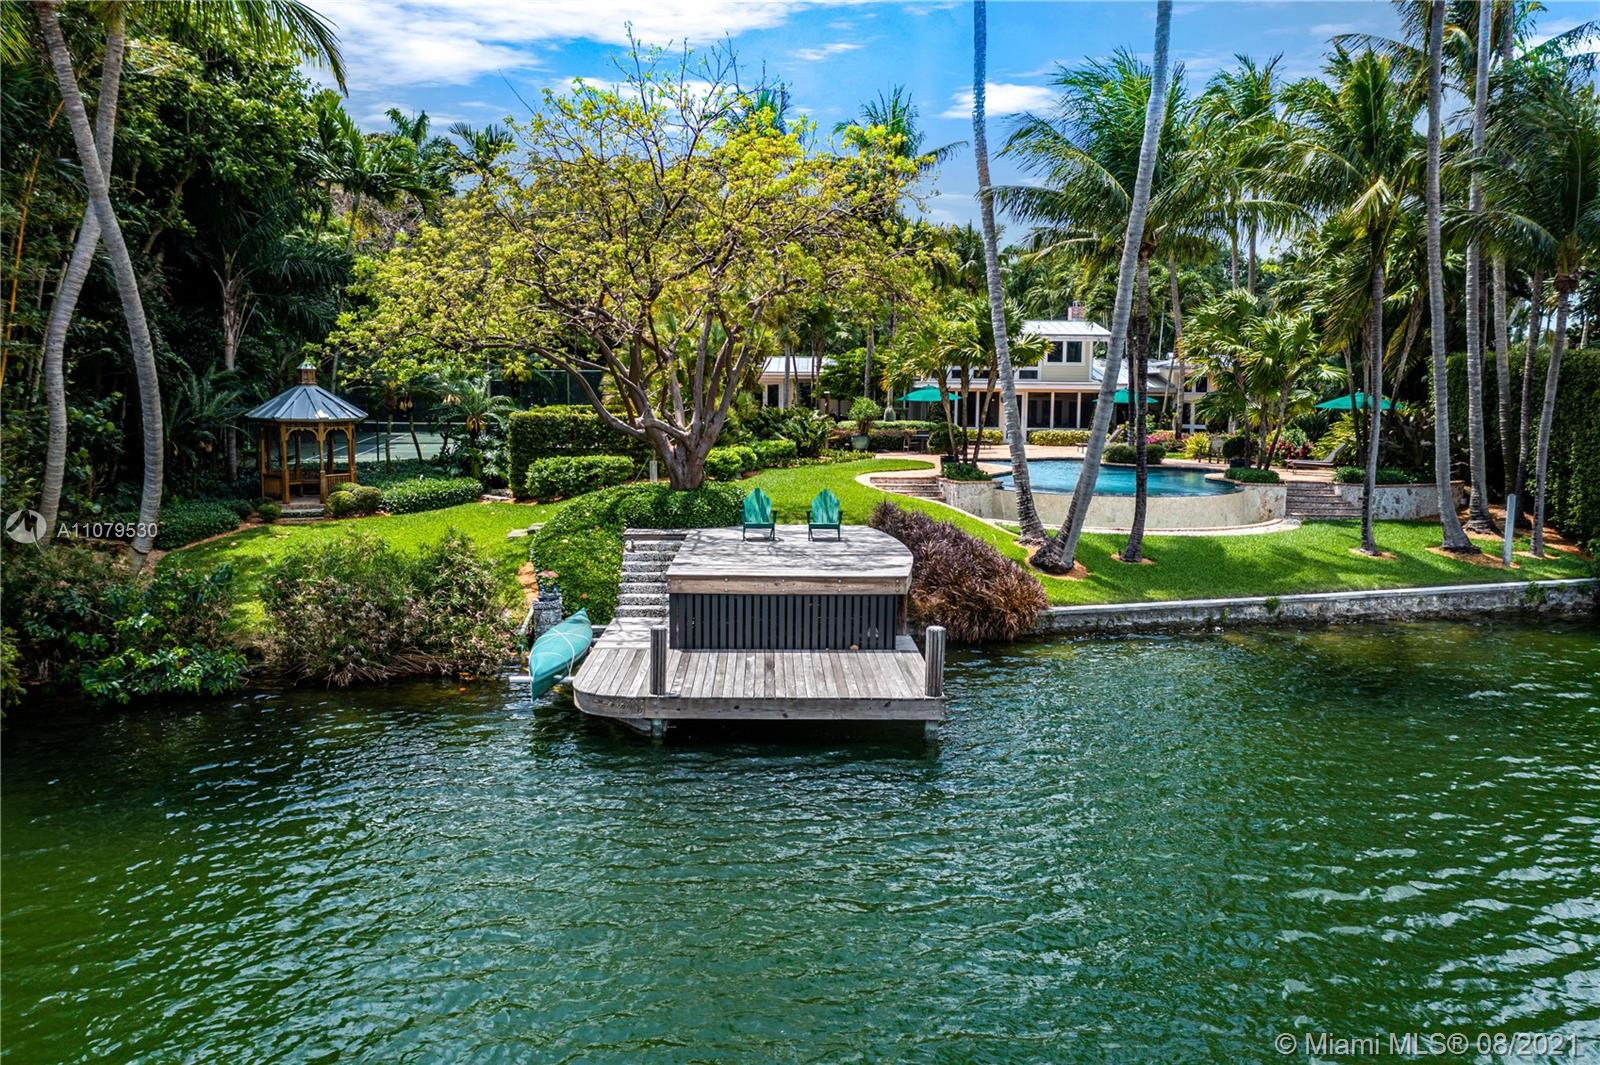 Situated in Hammock Lakes, one of the most desirable gated communities in Coral Gables, this gorgeous 6,427 Sq. Ft. home, with 4 BR and 2.5 BA, showcases breathtaking lake views, elegant light-filled living spaces, and resort-like gardens, offering a peaceful and harmonious connection with nature. The home includes a living room with fireplace, formal dining room, and chef's kitchen with walk-in pantry, Wolf and Sub-Zero appliances, and an eat-in island that opens to a gracious sunroom. A charming wood staircase leads from the foyer to the second-floor main suite, with a luxurious bath. Designed for comfortable living, the home also features a theater room with custom-made bar, office, gym, screened-in porch, beautiful infinity pool and tennis court. A captivating retreat in Coral Gables.